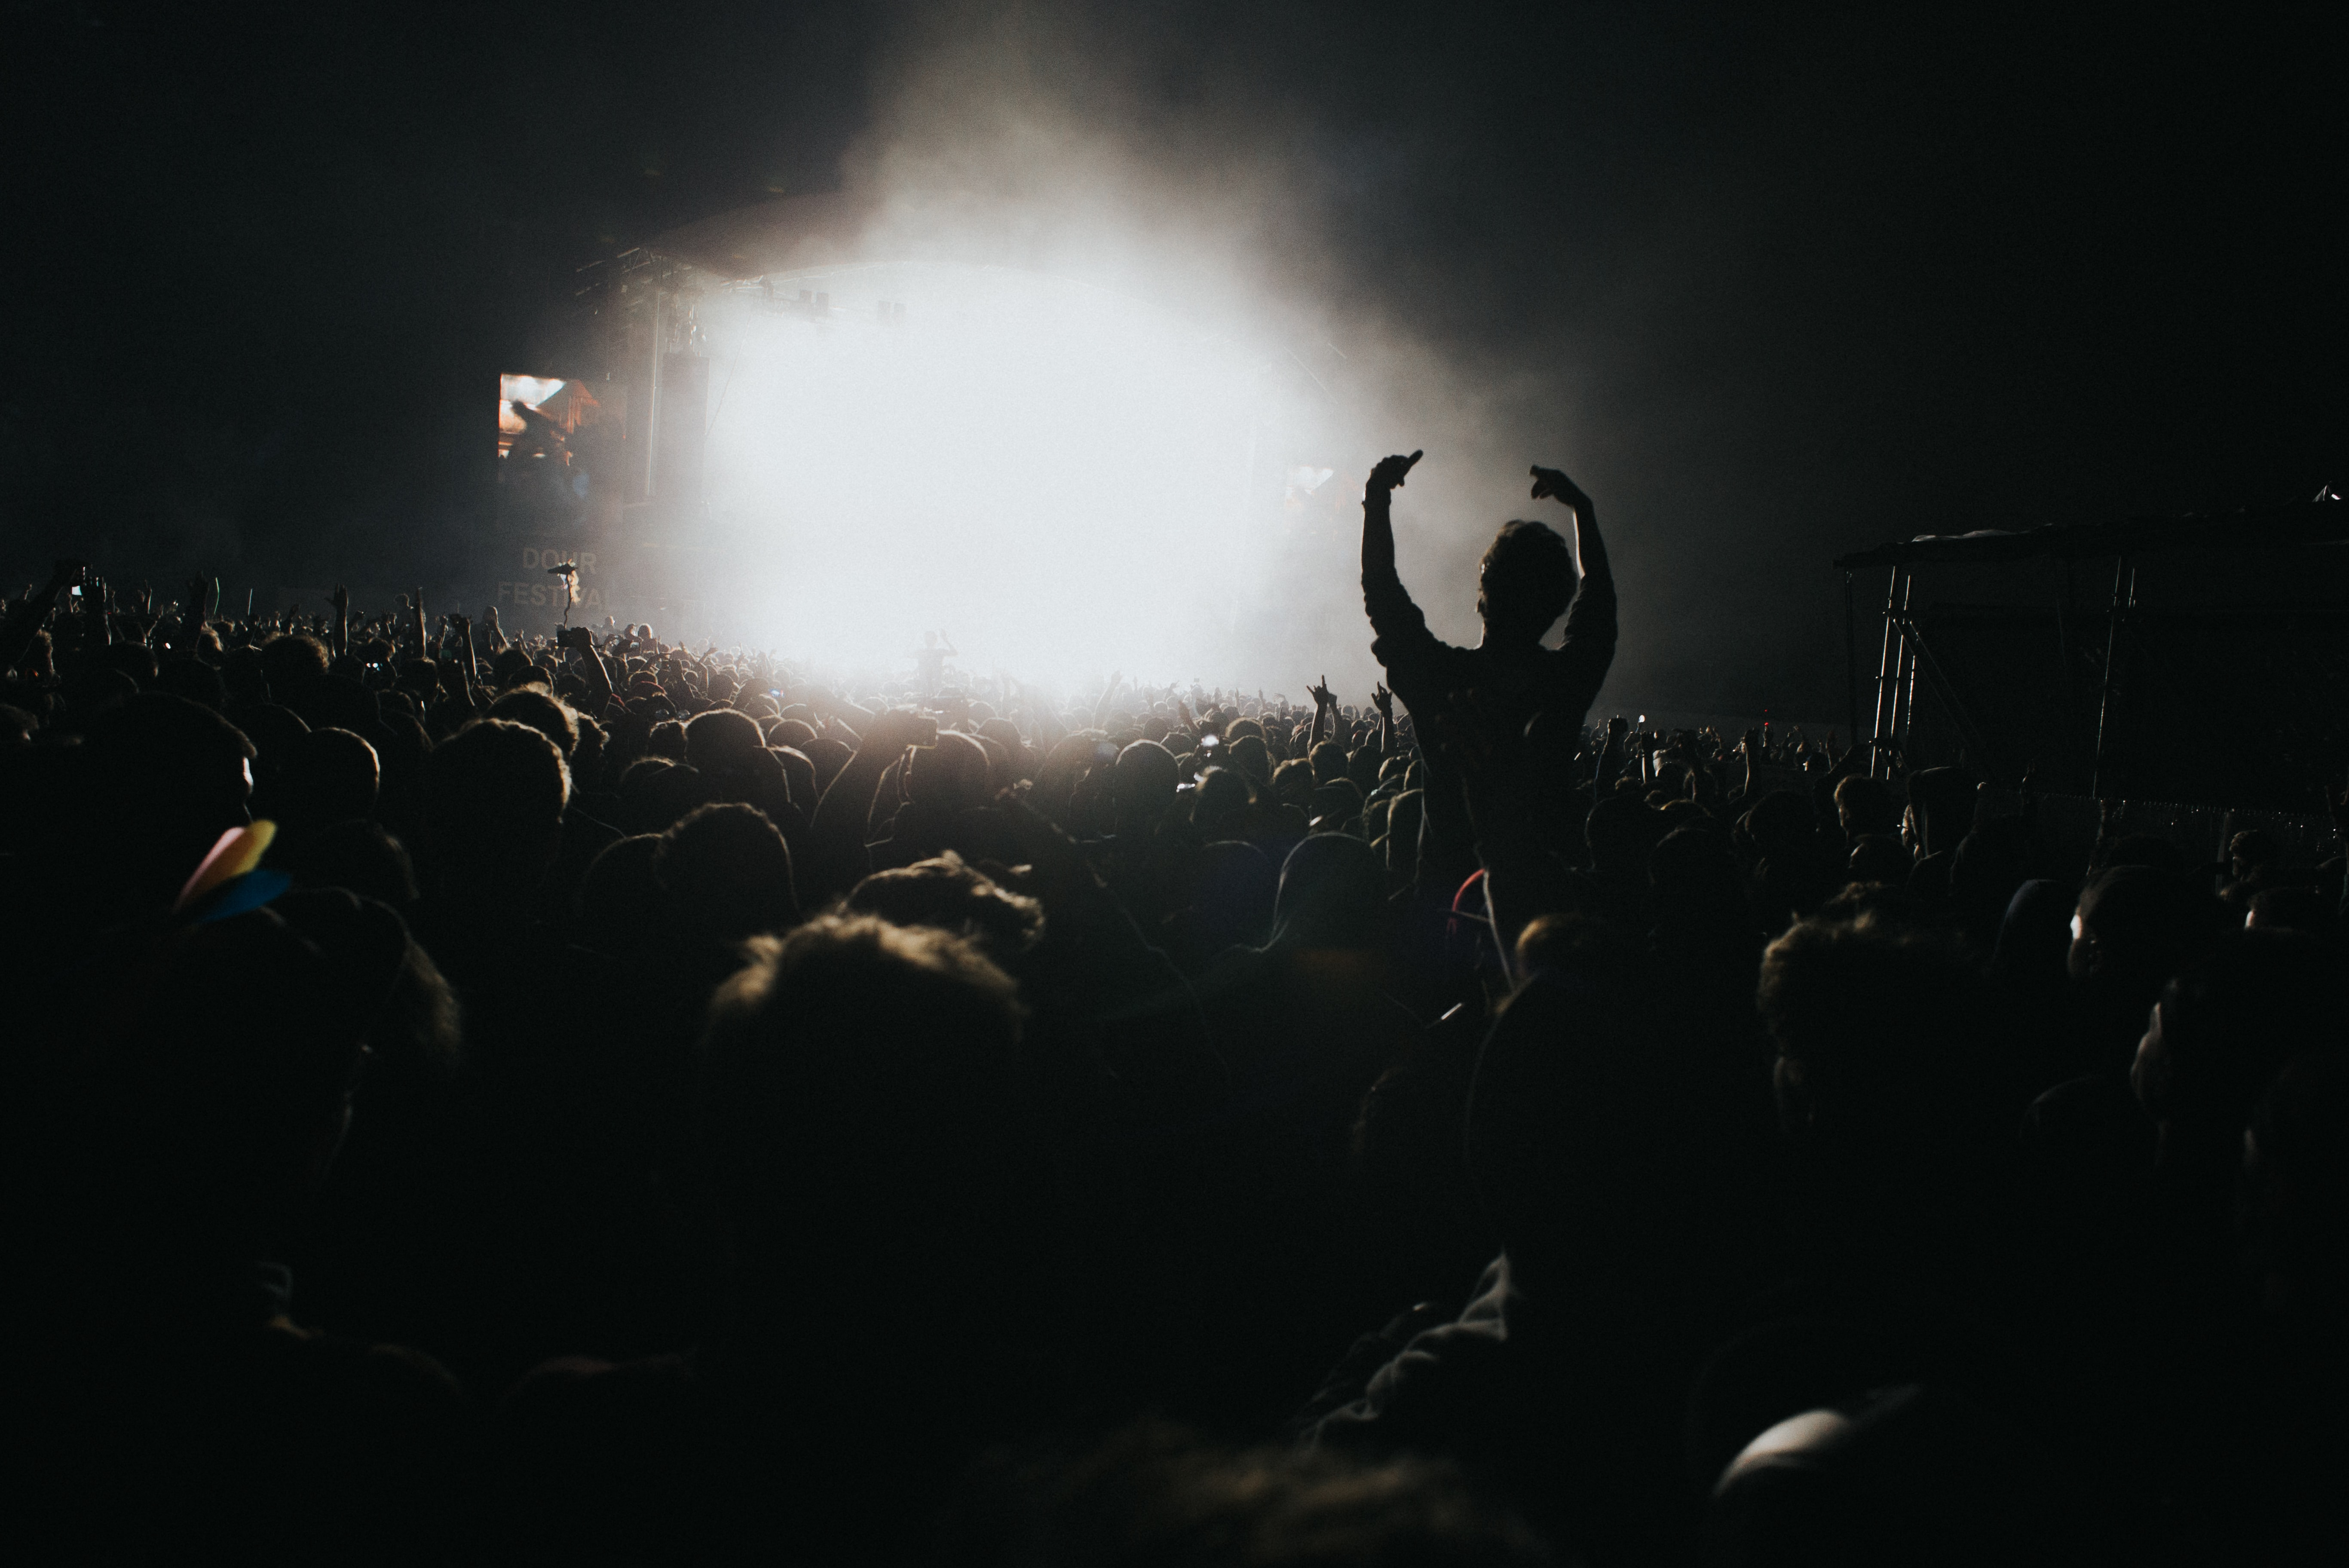 silhouette photography of people in concert